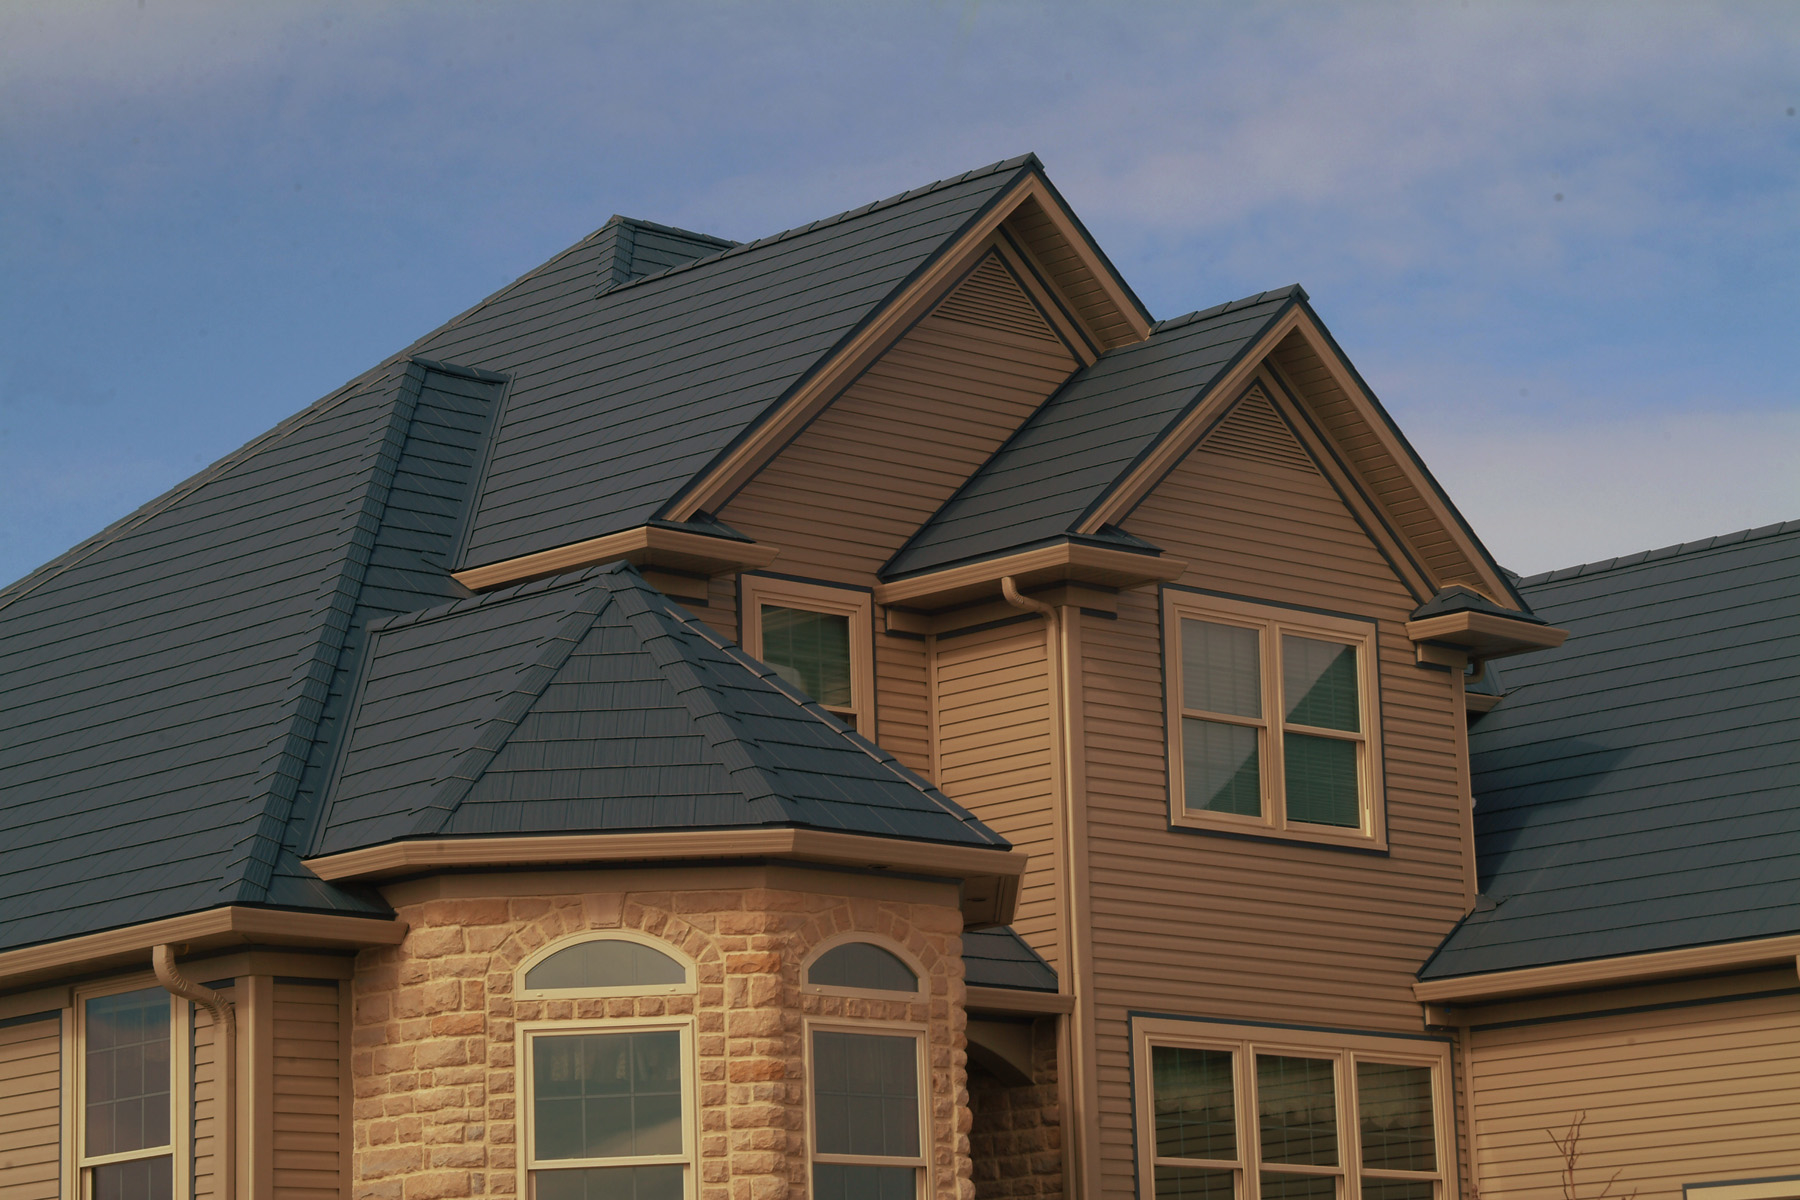 Greenville roofing in greenville sc roofing contractors American roofing and exteriors reviews